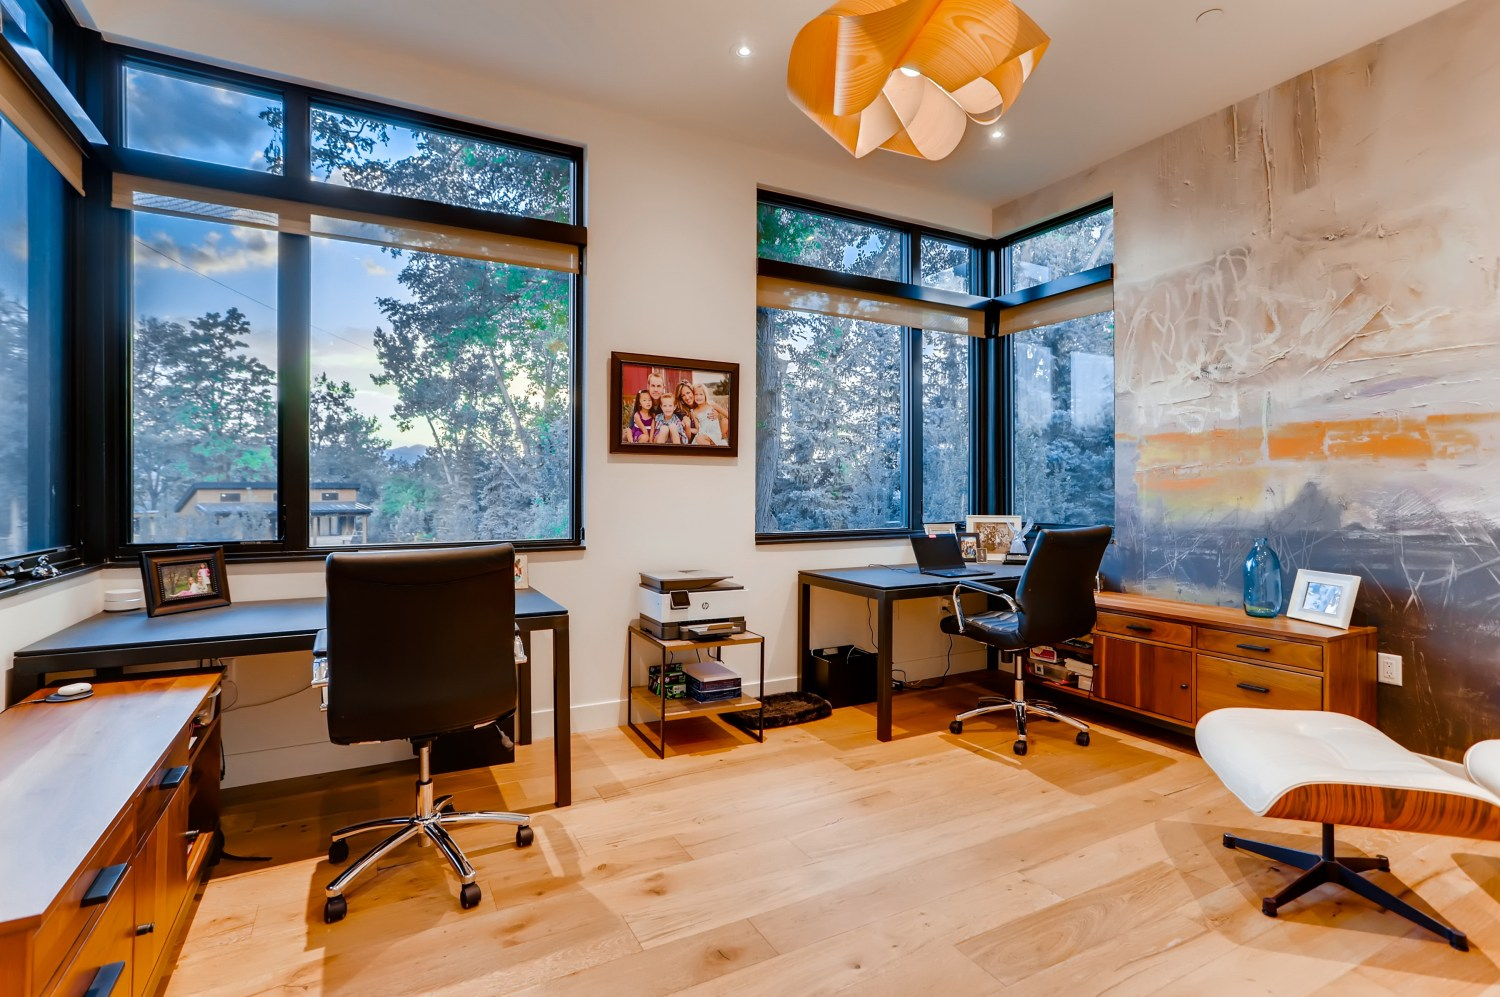 Home office with two built-in desks.